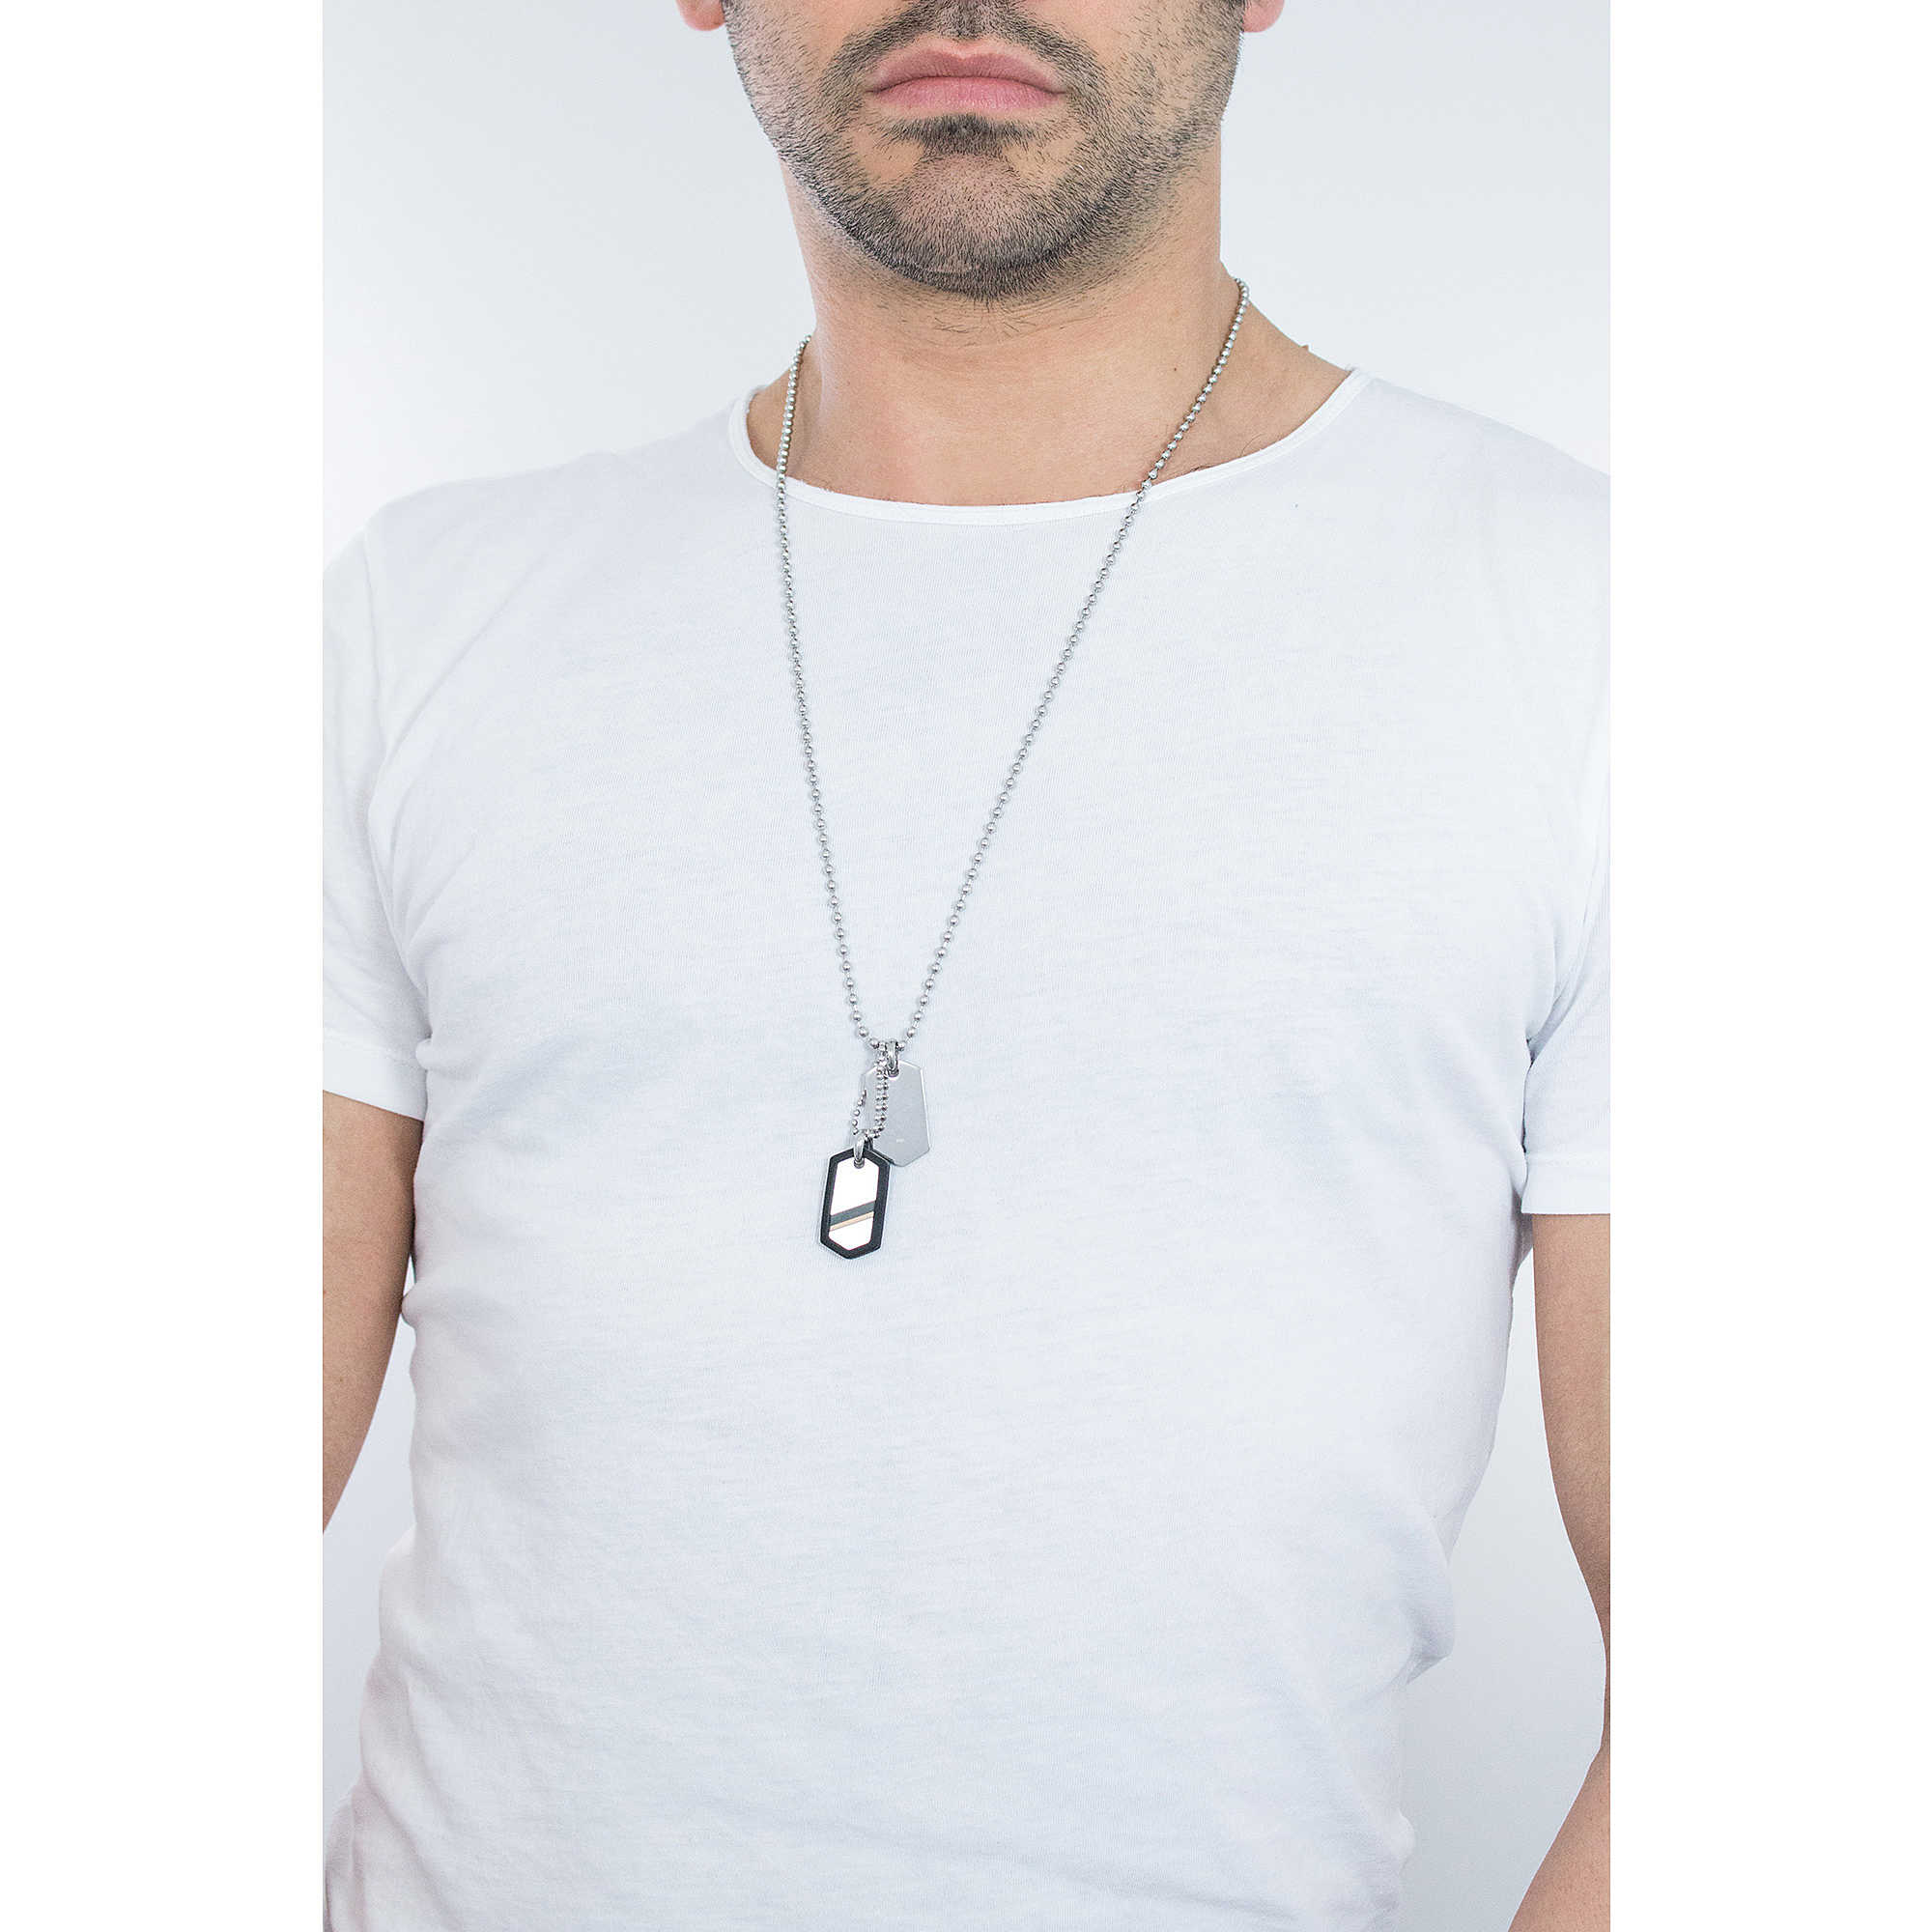 Fossil Jewelry T And Bq1444 Silver Necklace Man Jewellery Mens Dress Jf02824040 Zoom Necklaces Photo Wearing